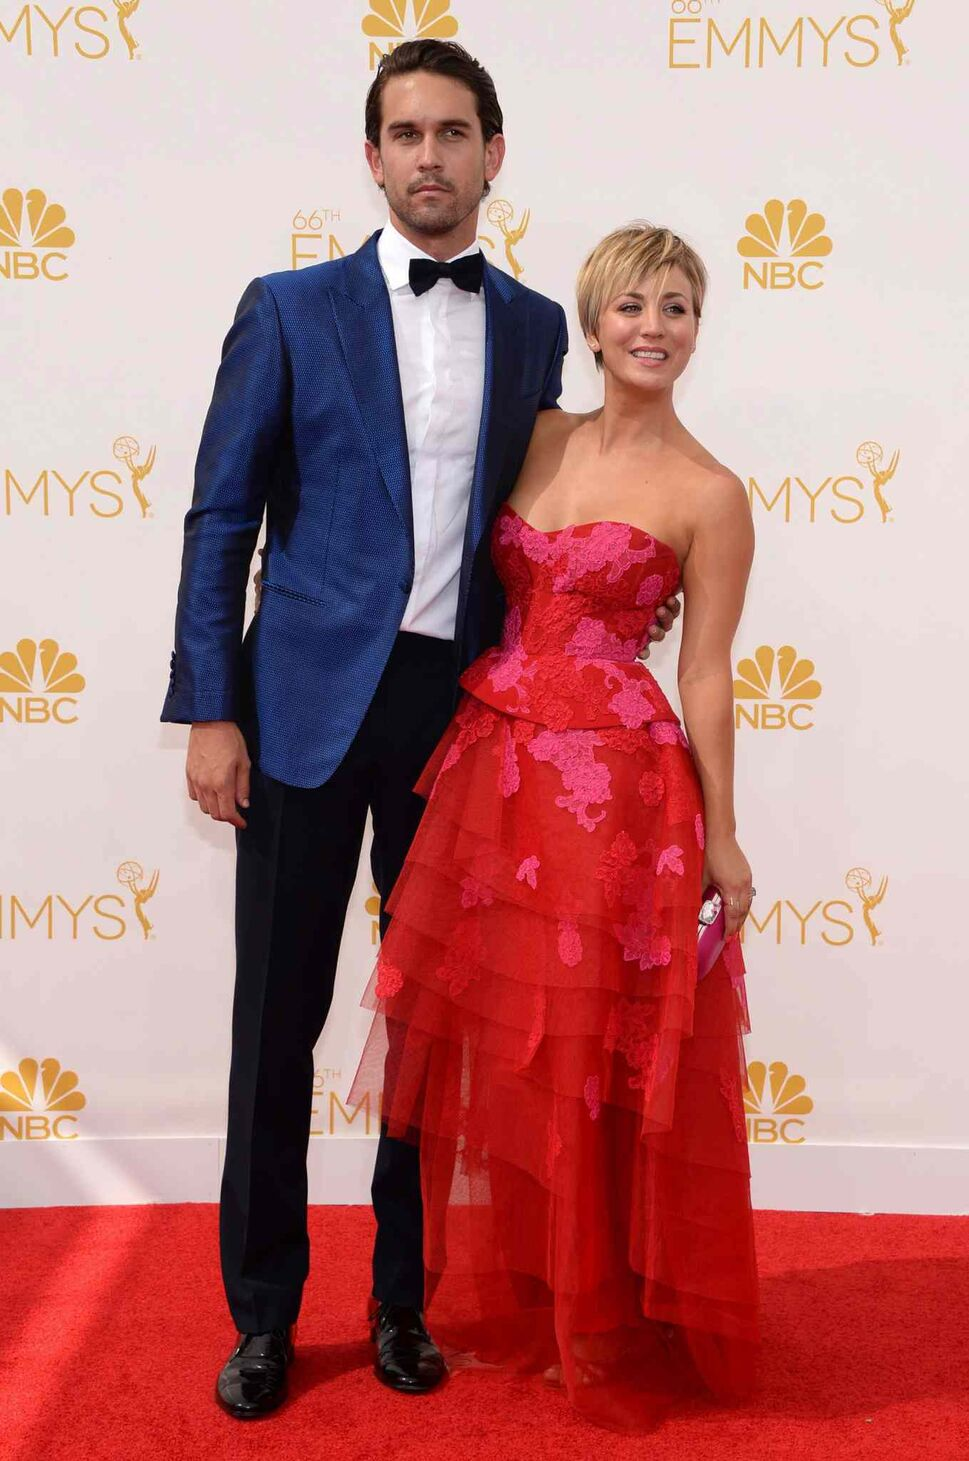 Ryan Sweeting, left, and Kaley Cuoco-Sweeting (The Big Bang Theory) arrive at the 66th Primetime Emmy Awards at the Nokia Theatre L.A. Live Monday in Los Angeles.  (Evan Agostini/Invision for the Television Academy/AP Images)